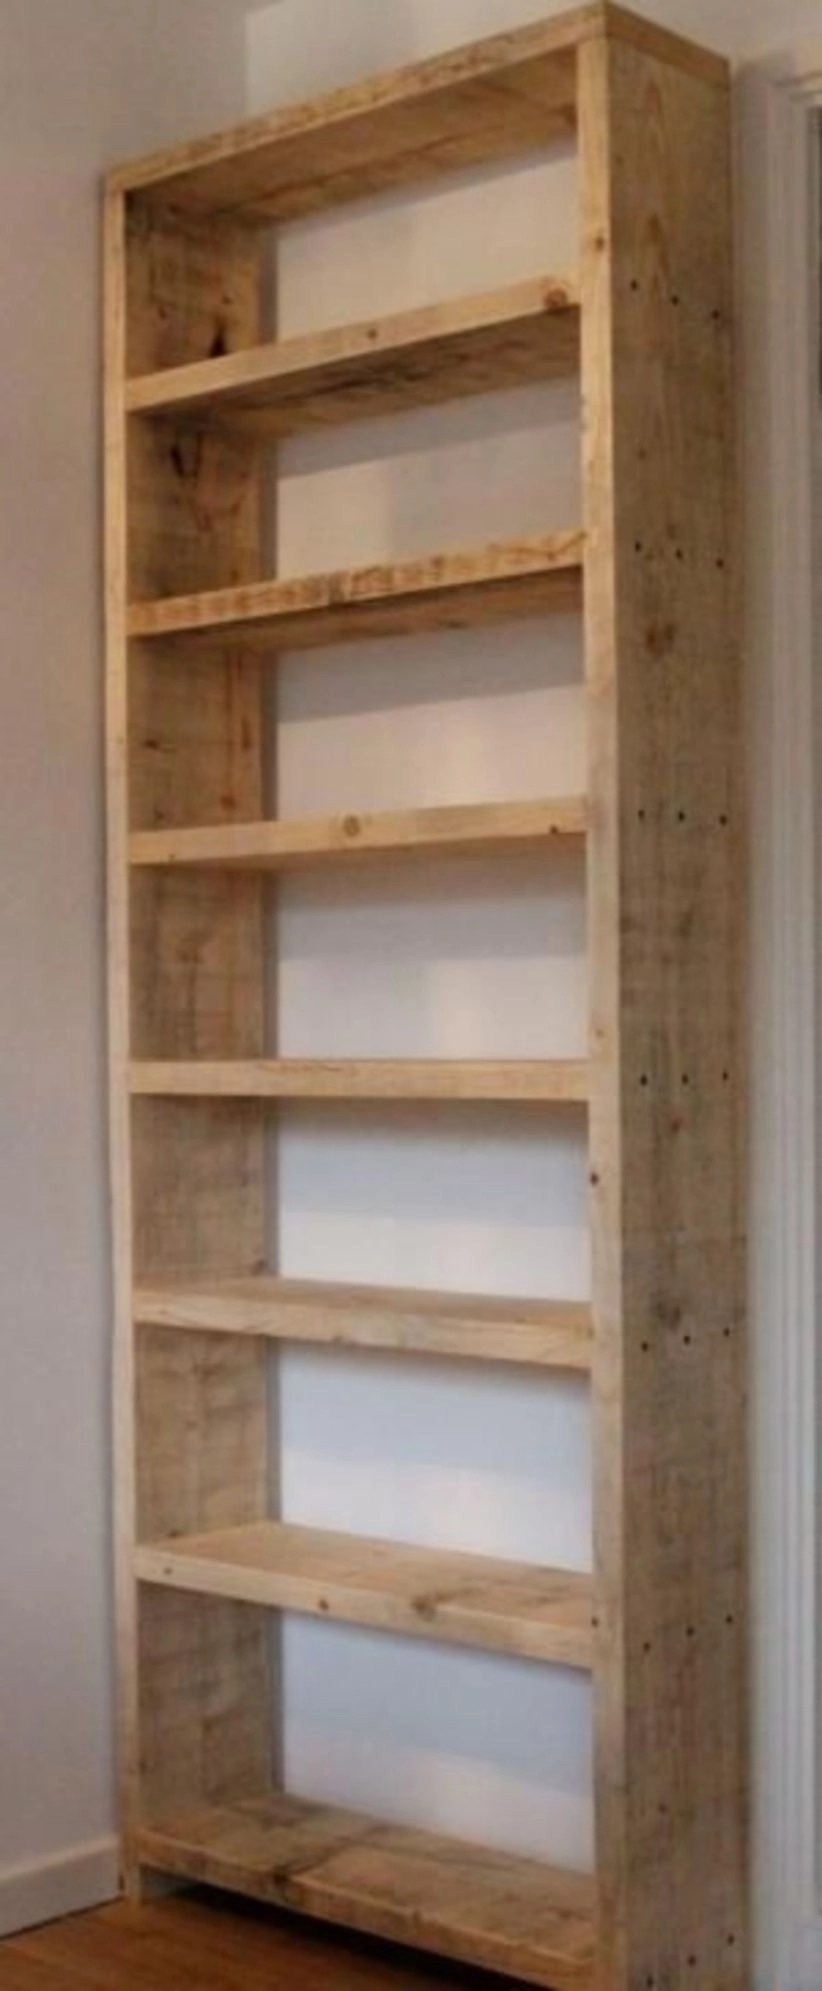 Great guide to awesome diy shelves